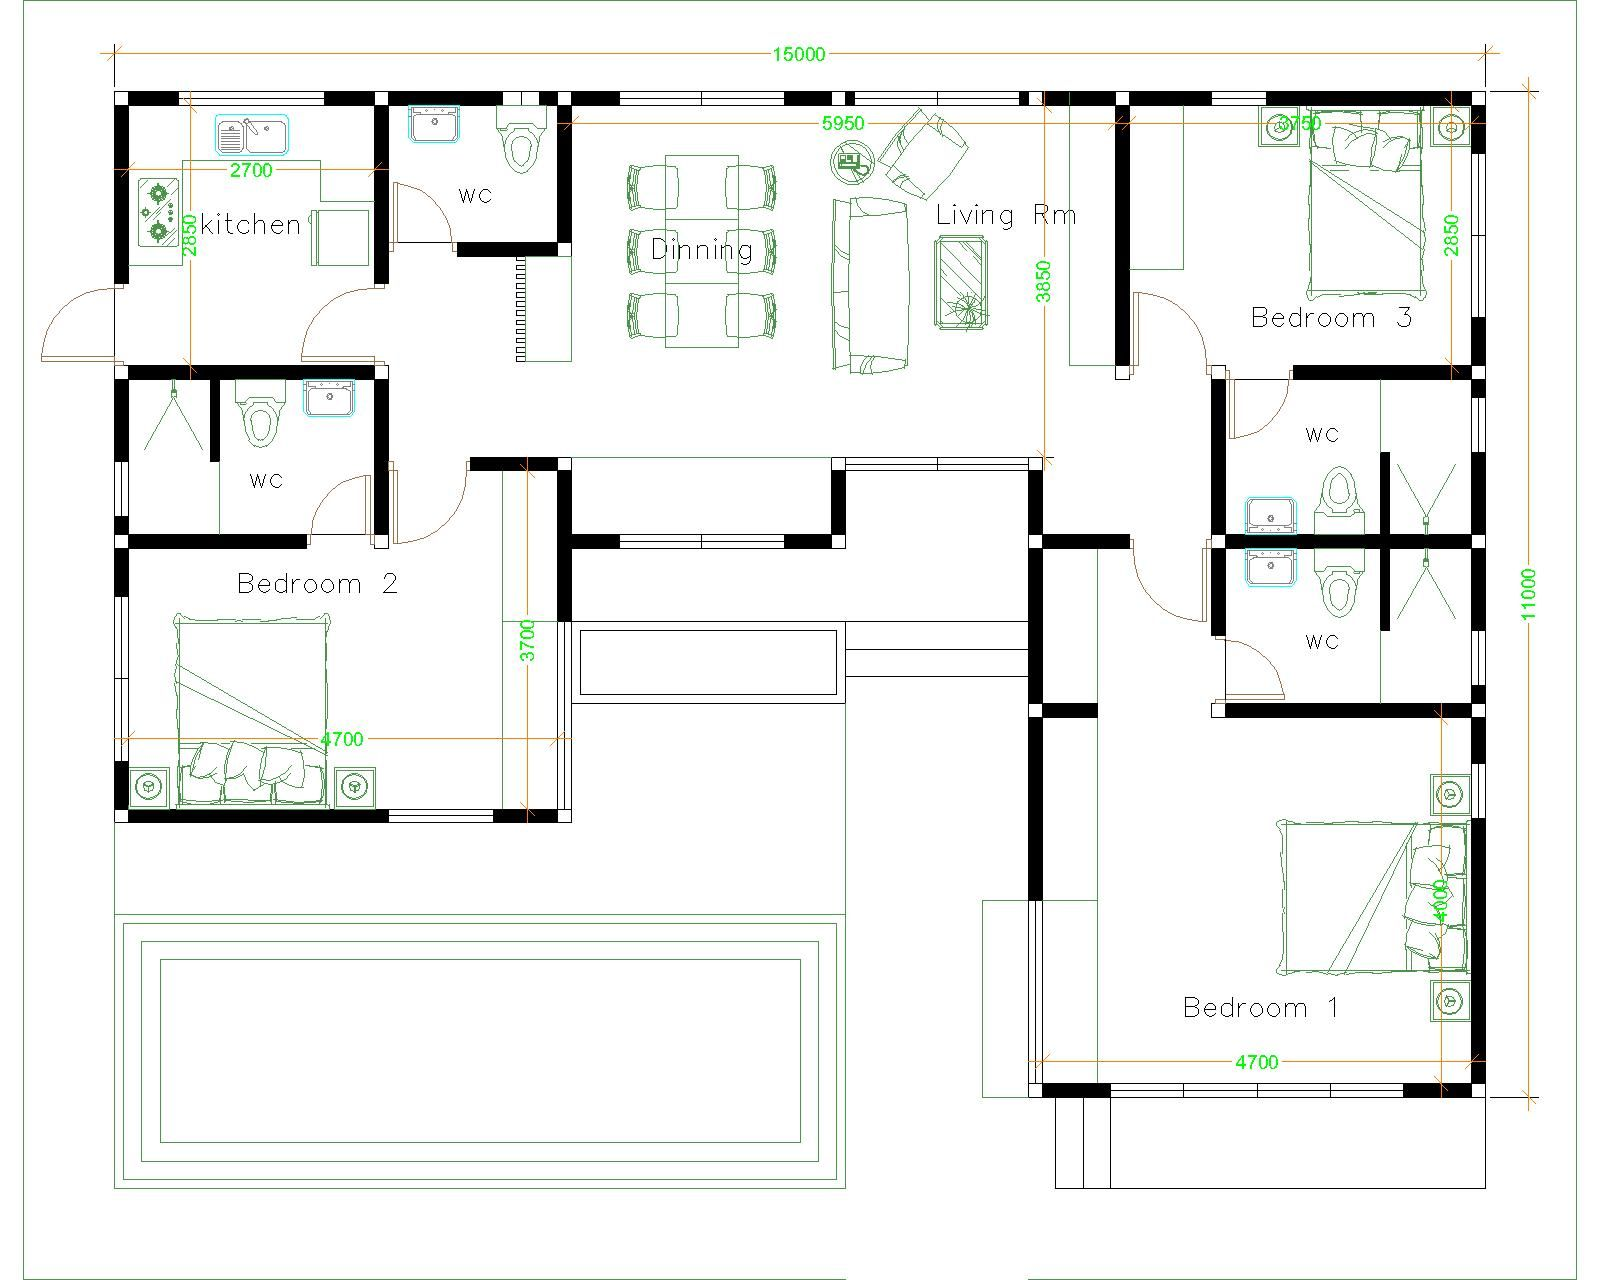 House Plans Idea 17x13 With 3 Bedrooms Slope Roof Sam House Plans In 2020 House Plans Architectural House Plans How To Plan